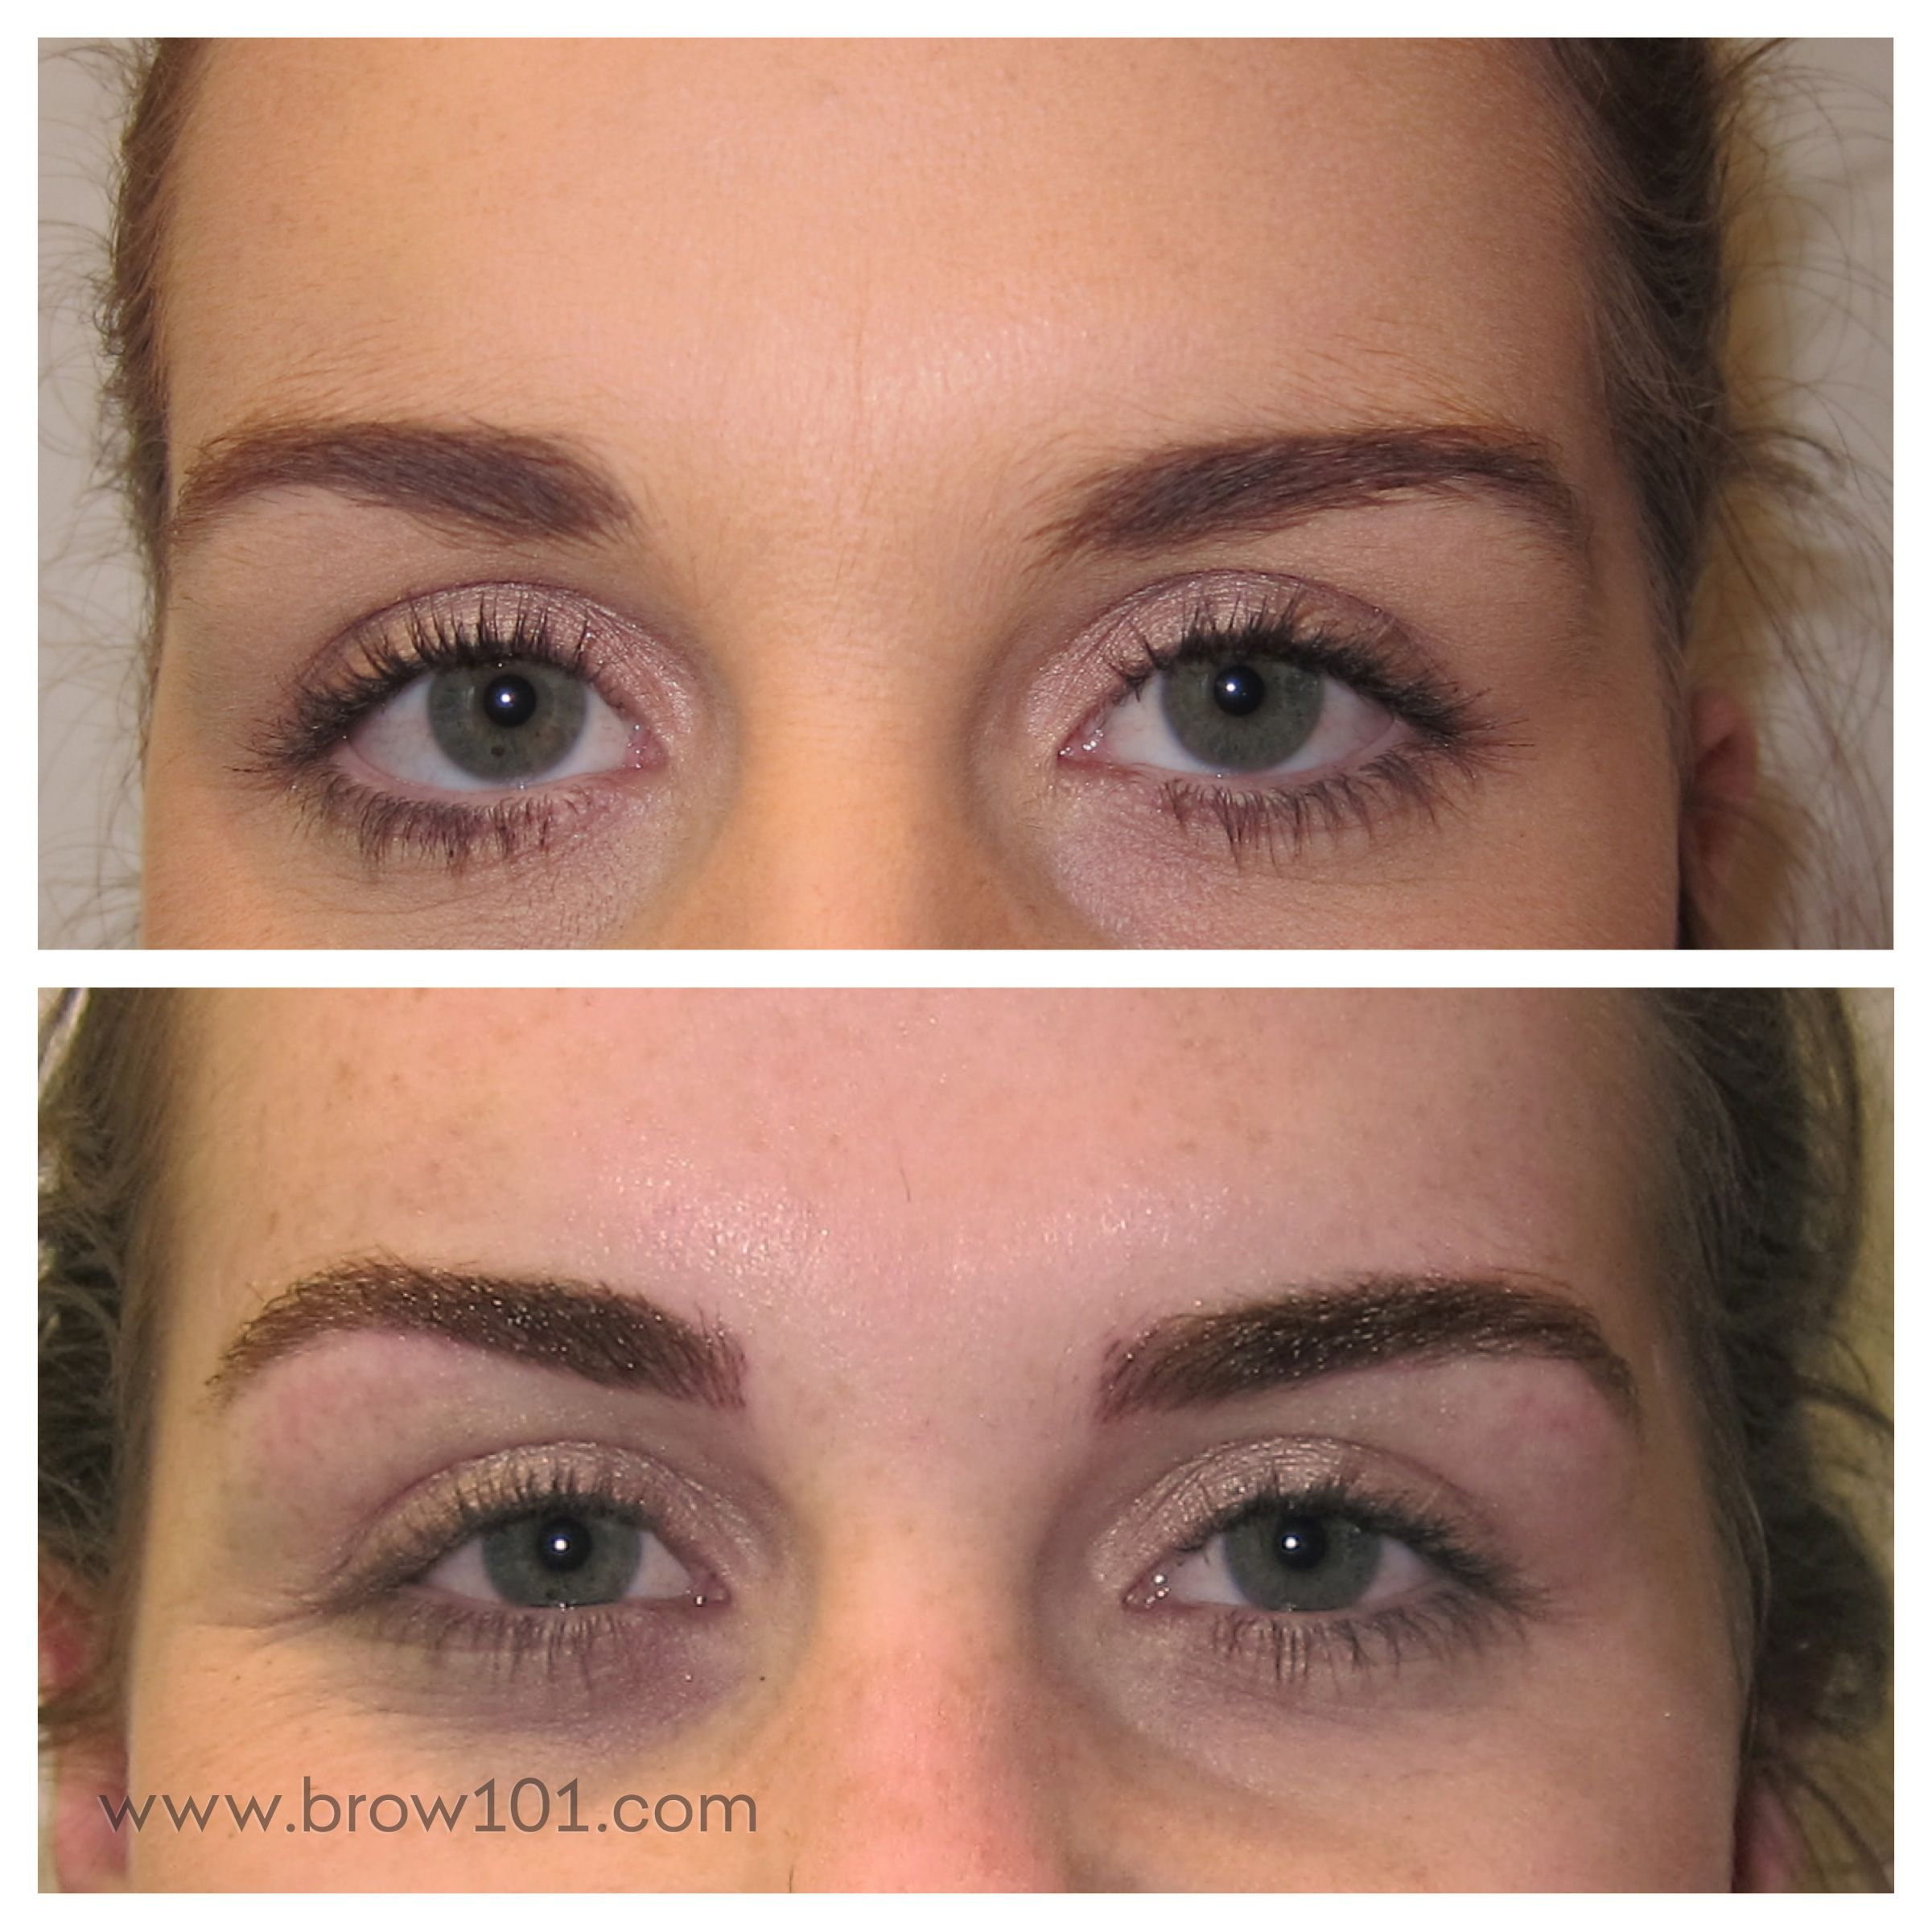 This is a combination of brow shaping and microblade tattooing ...